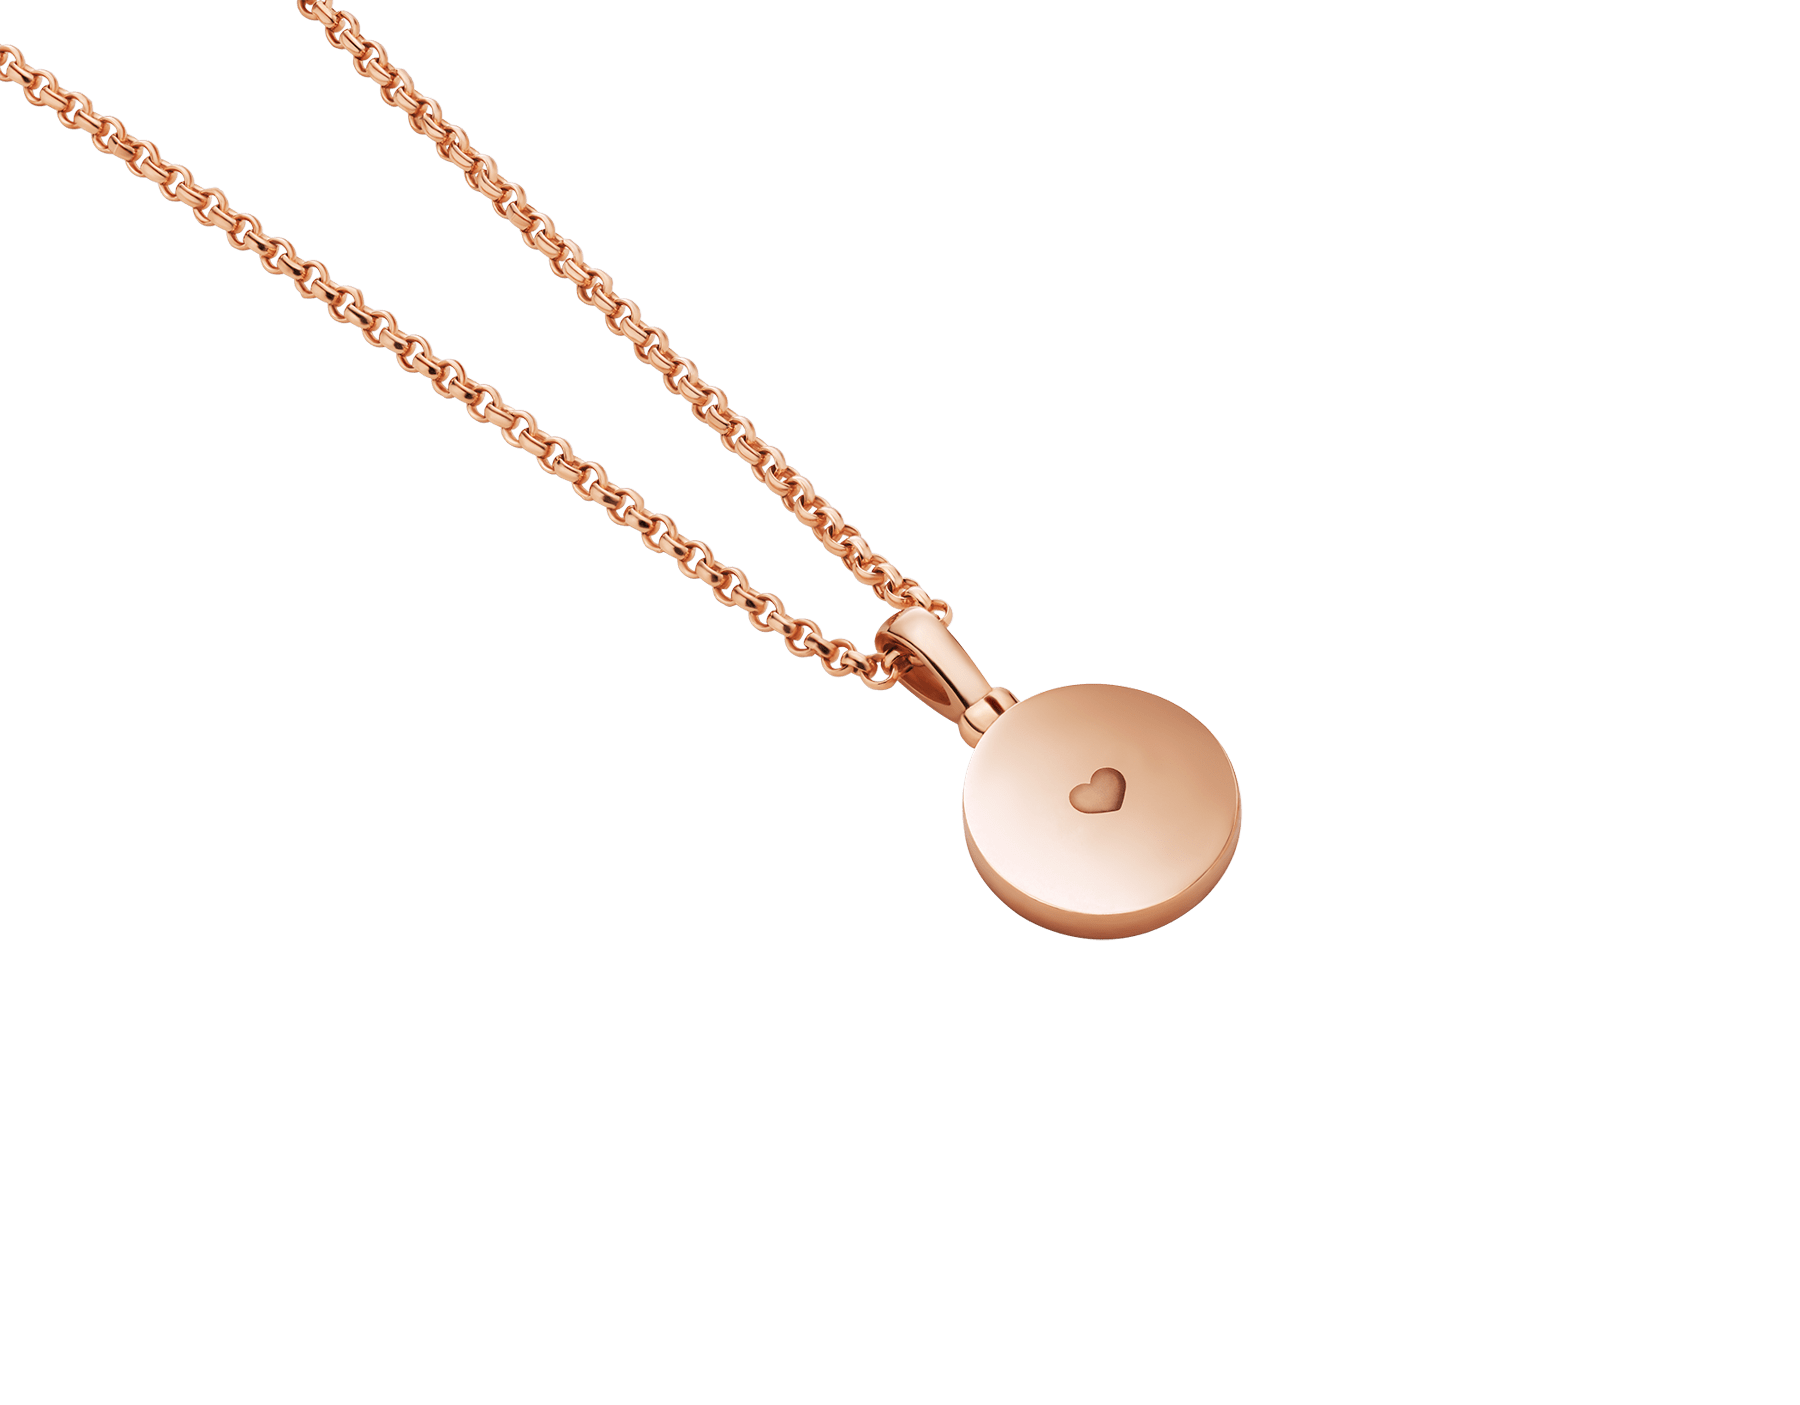 BVLGARI BVLGARI 18 kt rose gold pendant necklace set with mother-of-pearl centre, customisable with engraving on the back 358376 image 4